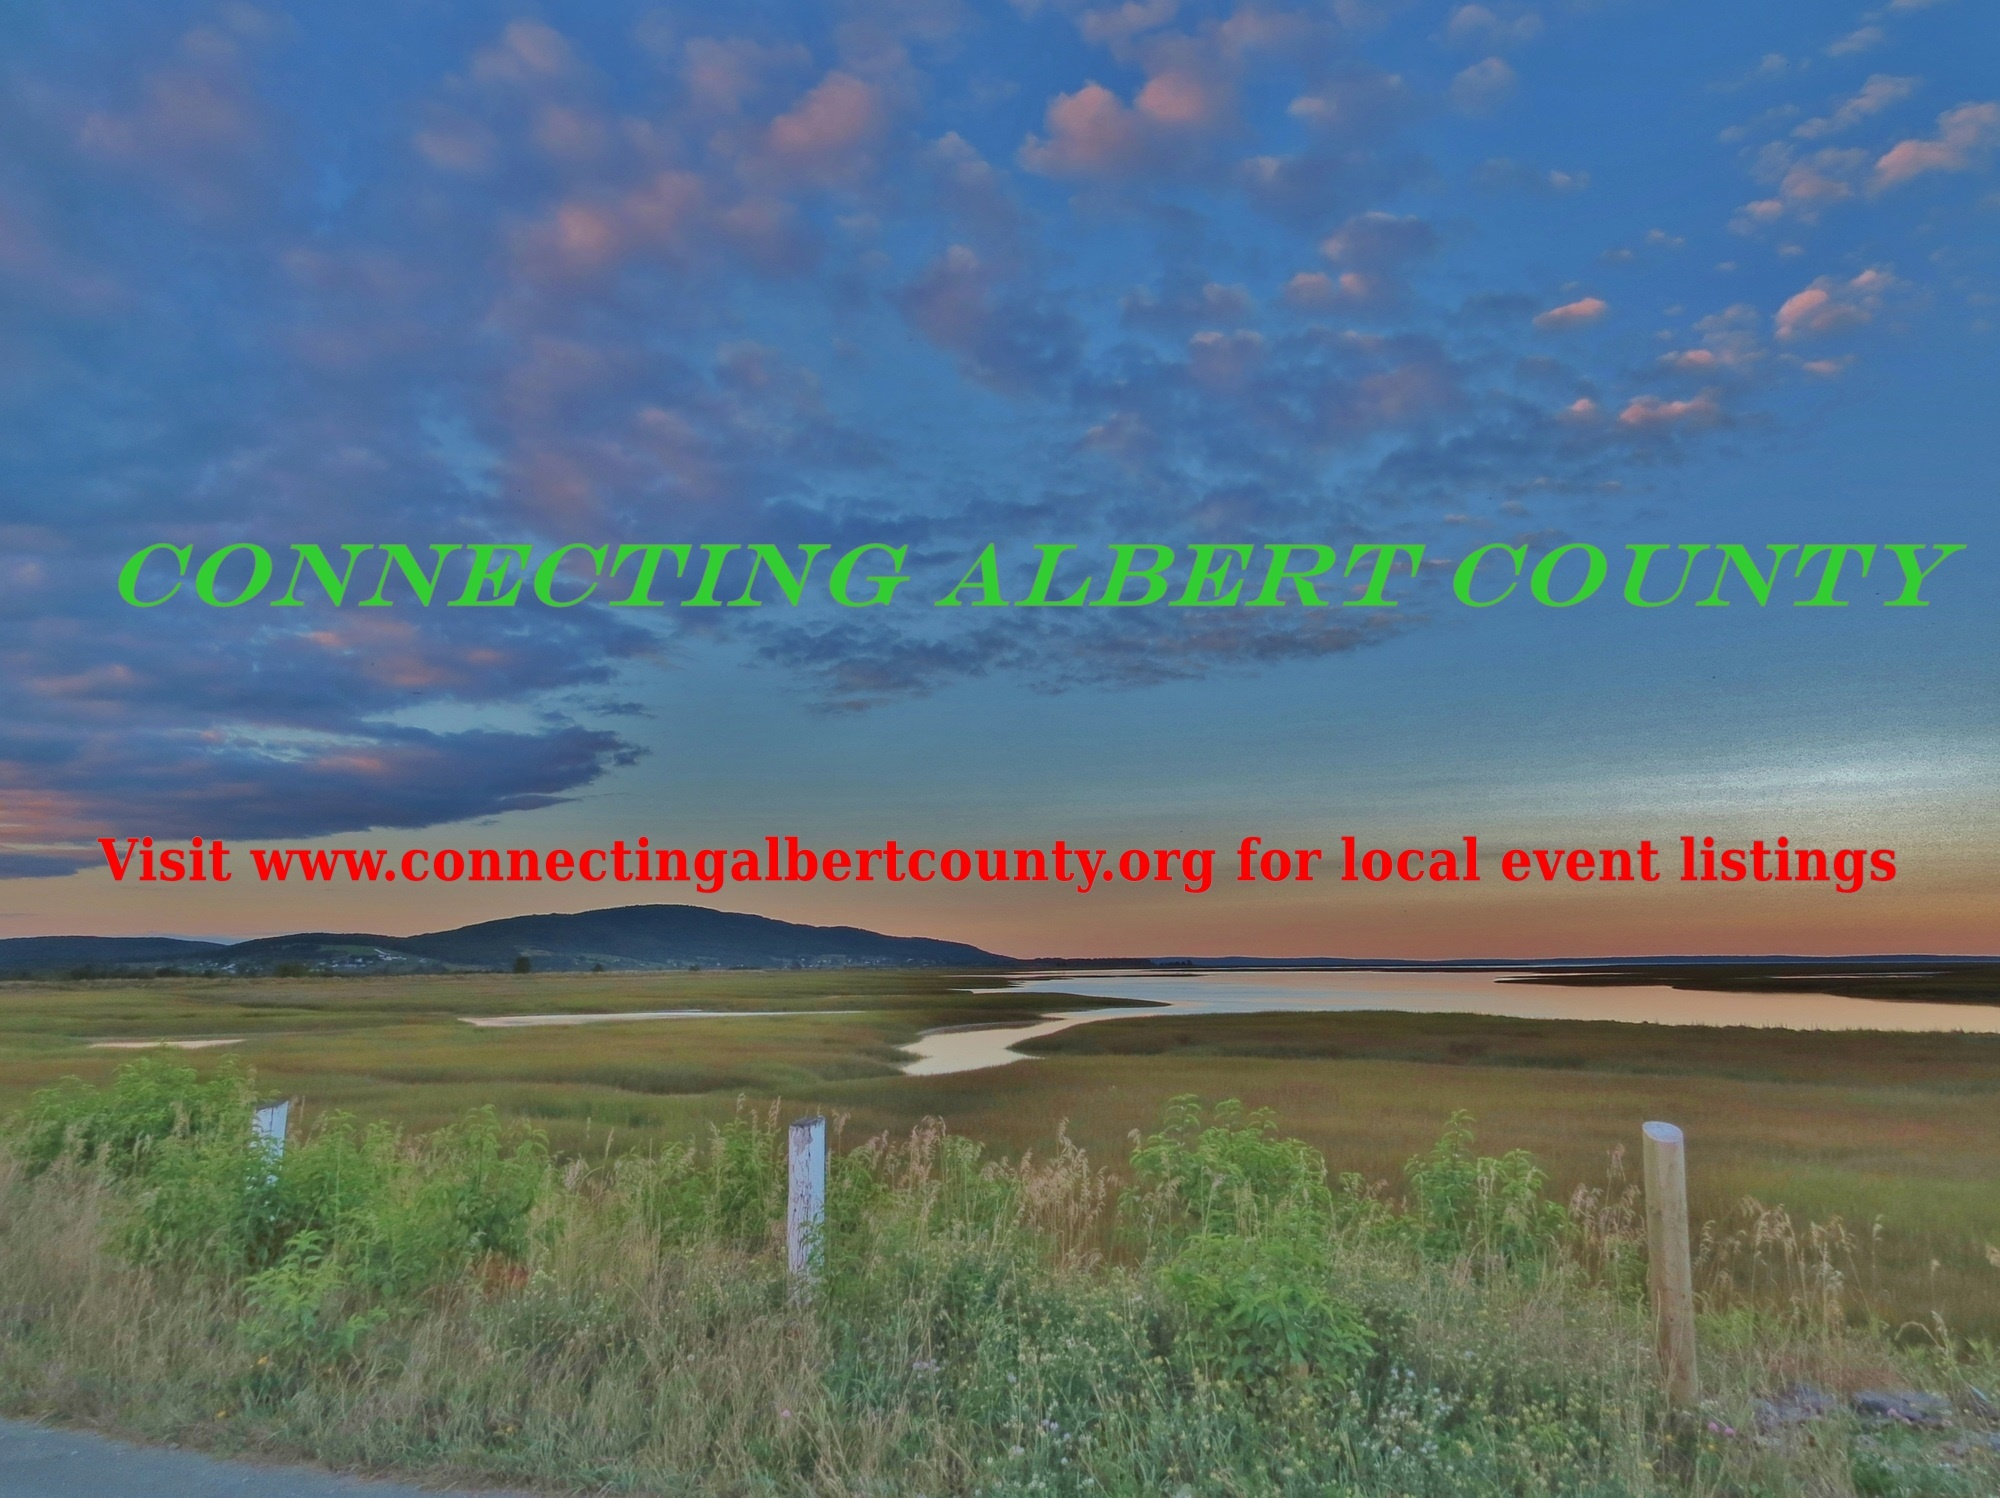 Click on the image to visit  Connecting Albert County